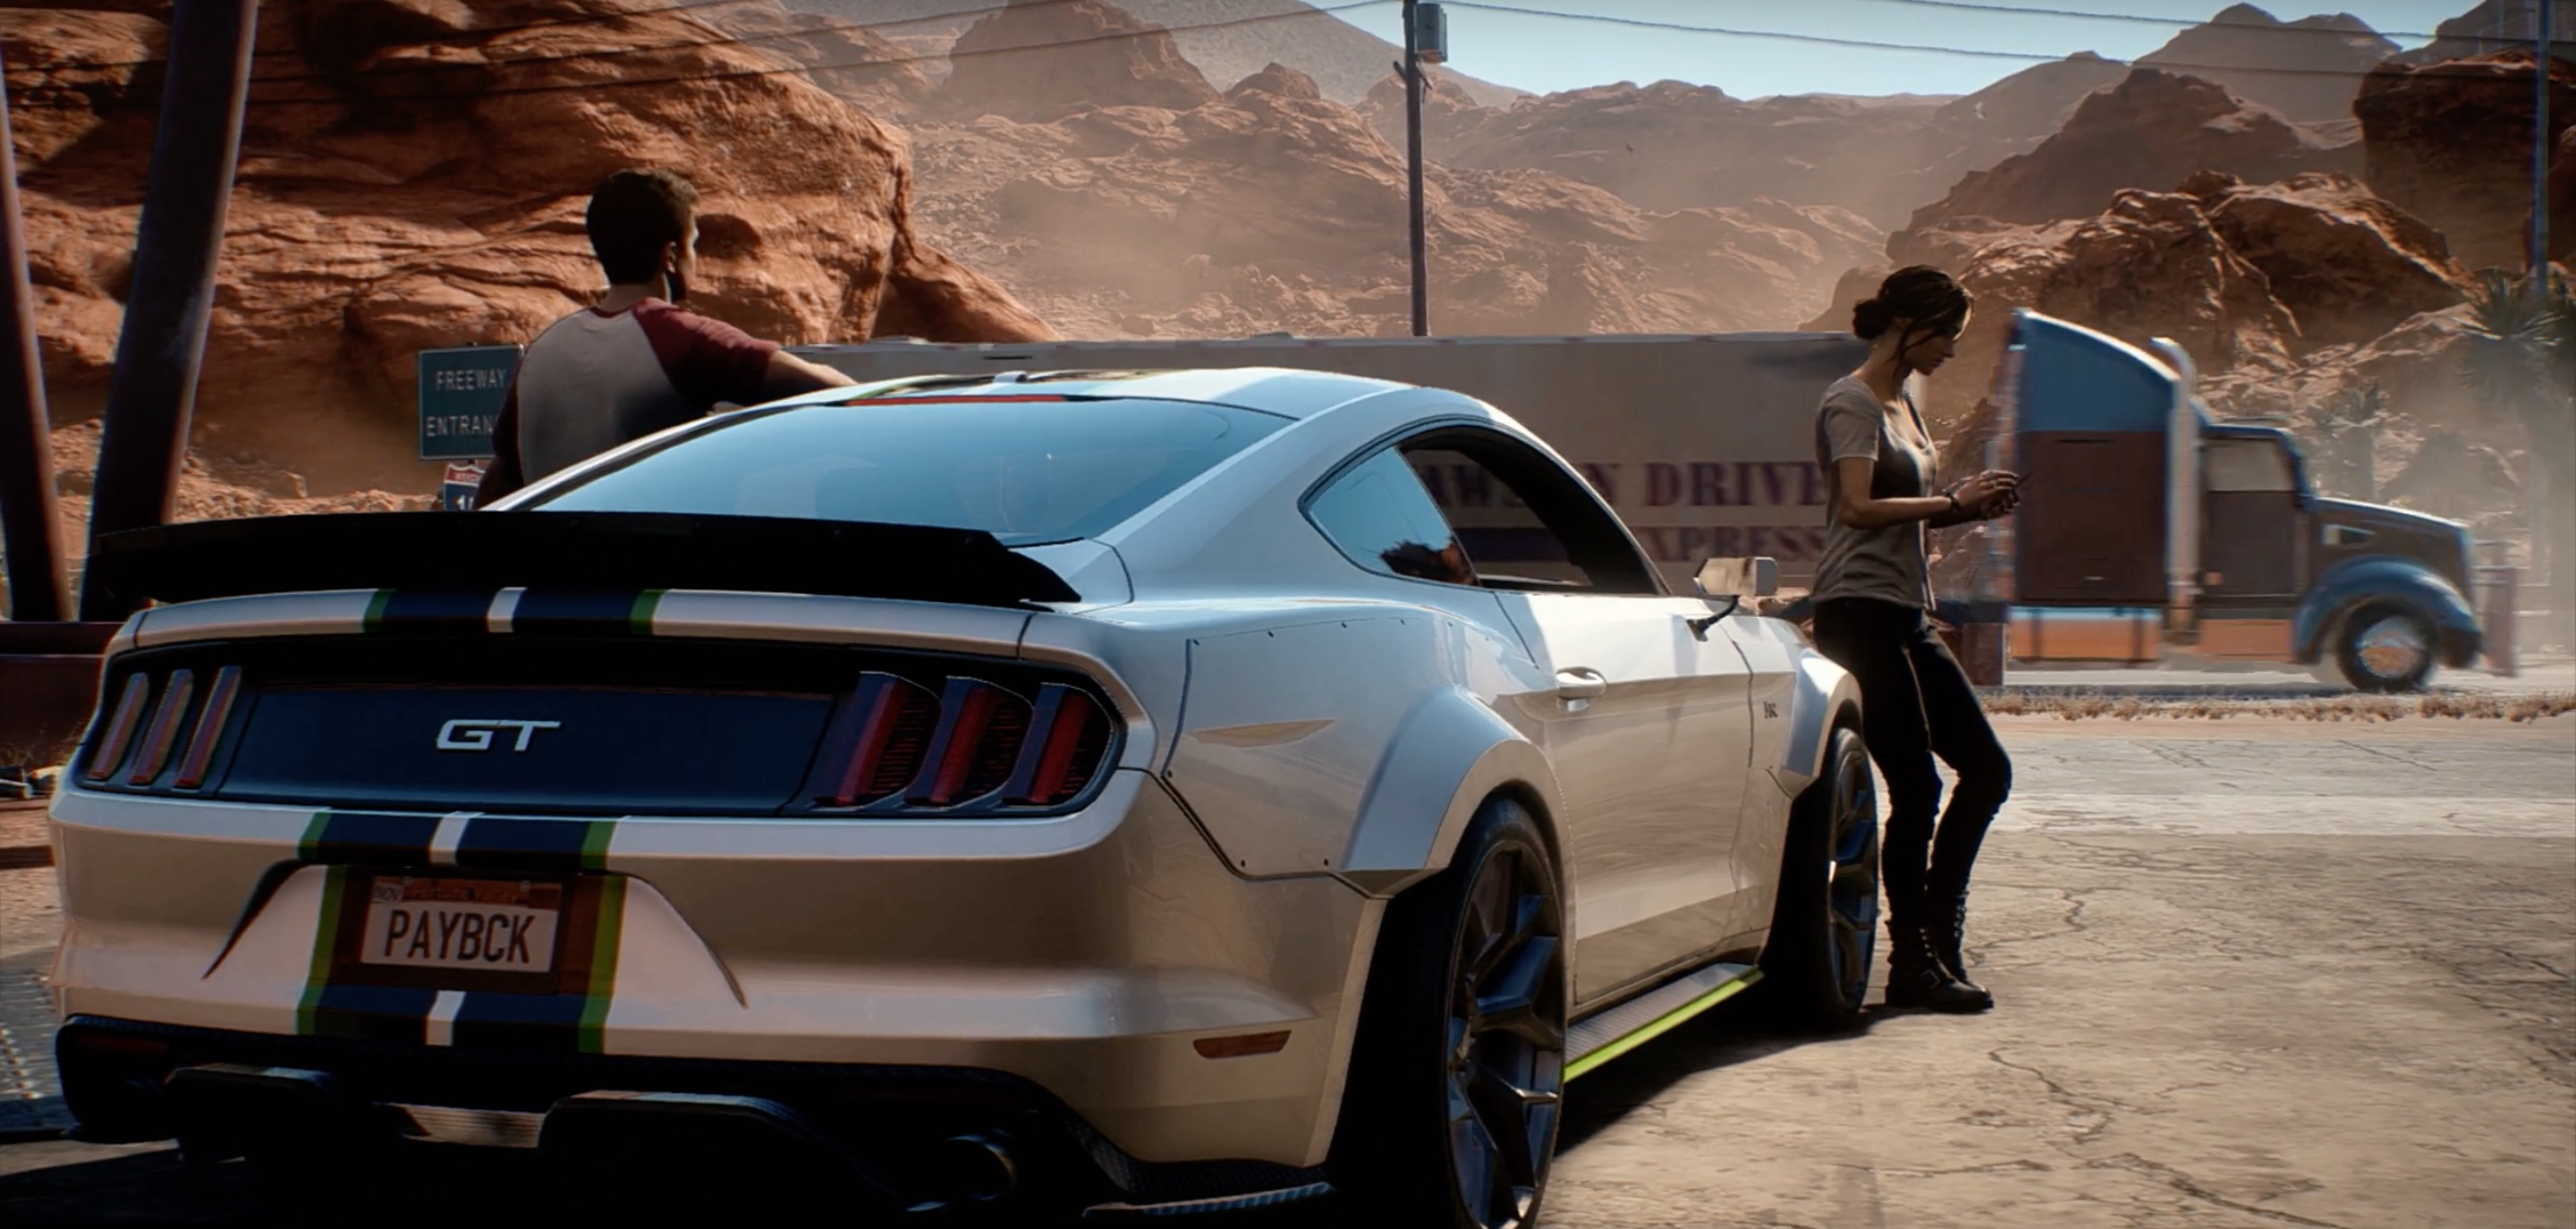 ea chce mie swoich szybkich i w ciek ych oto need for speed payback. Black Bedroom Furniture Sets. Home Design Ideas